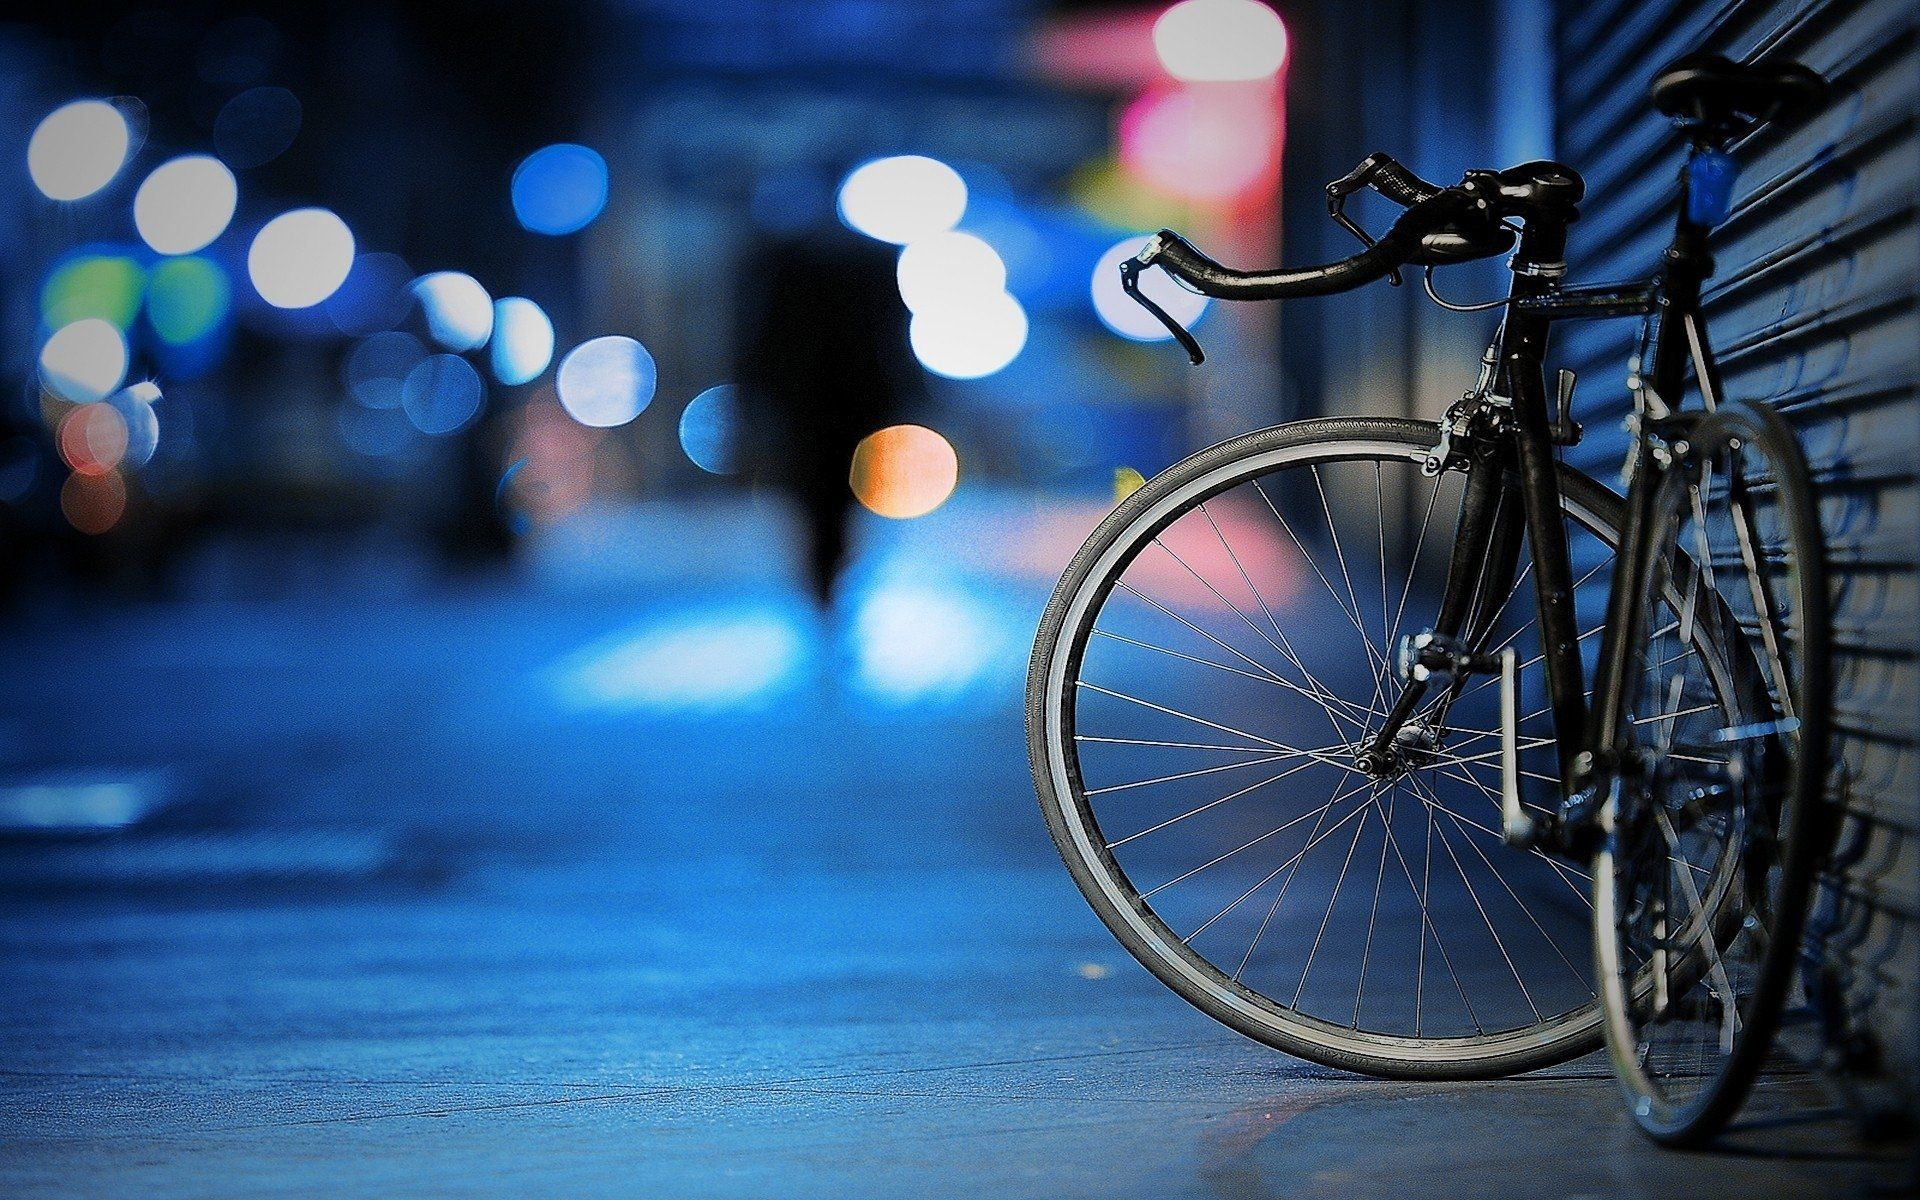 1920x1200 Bicycle Wallpaper Background Image View Download